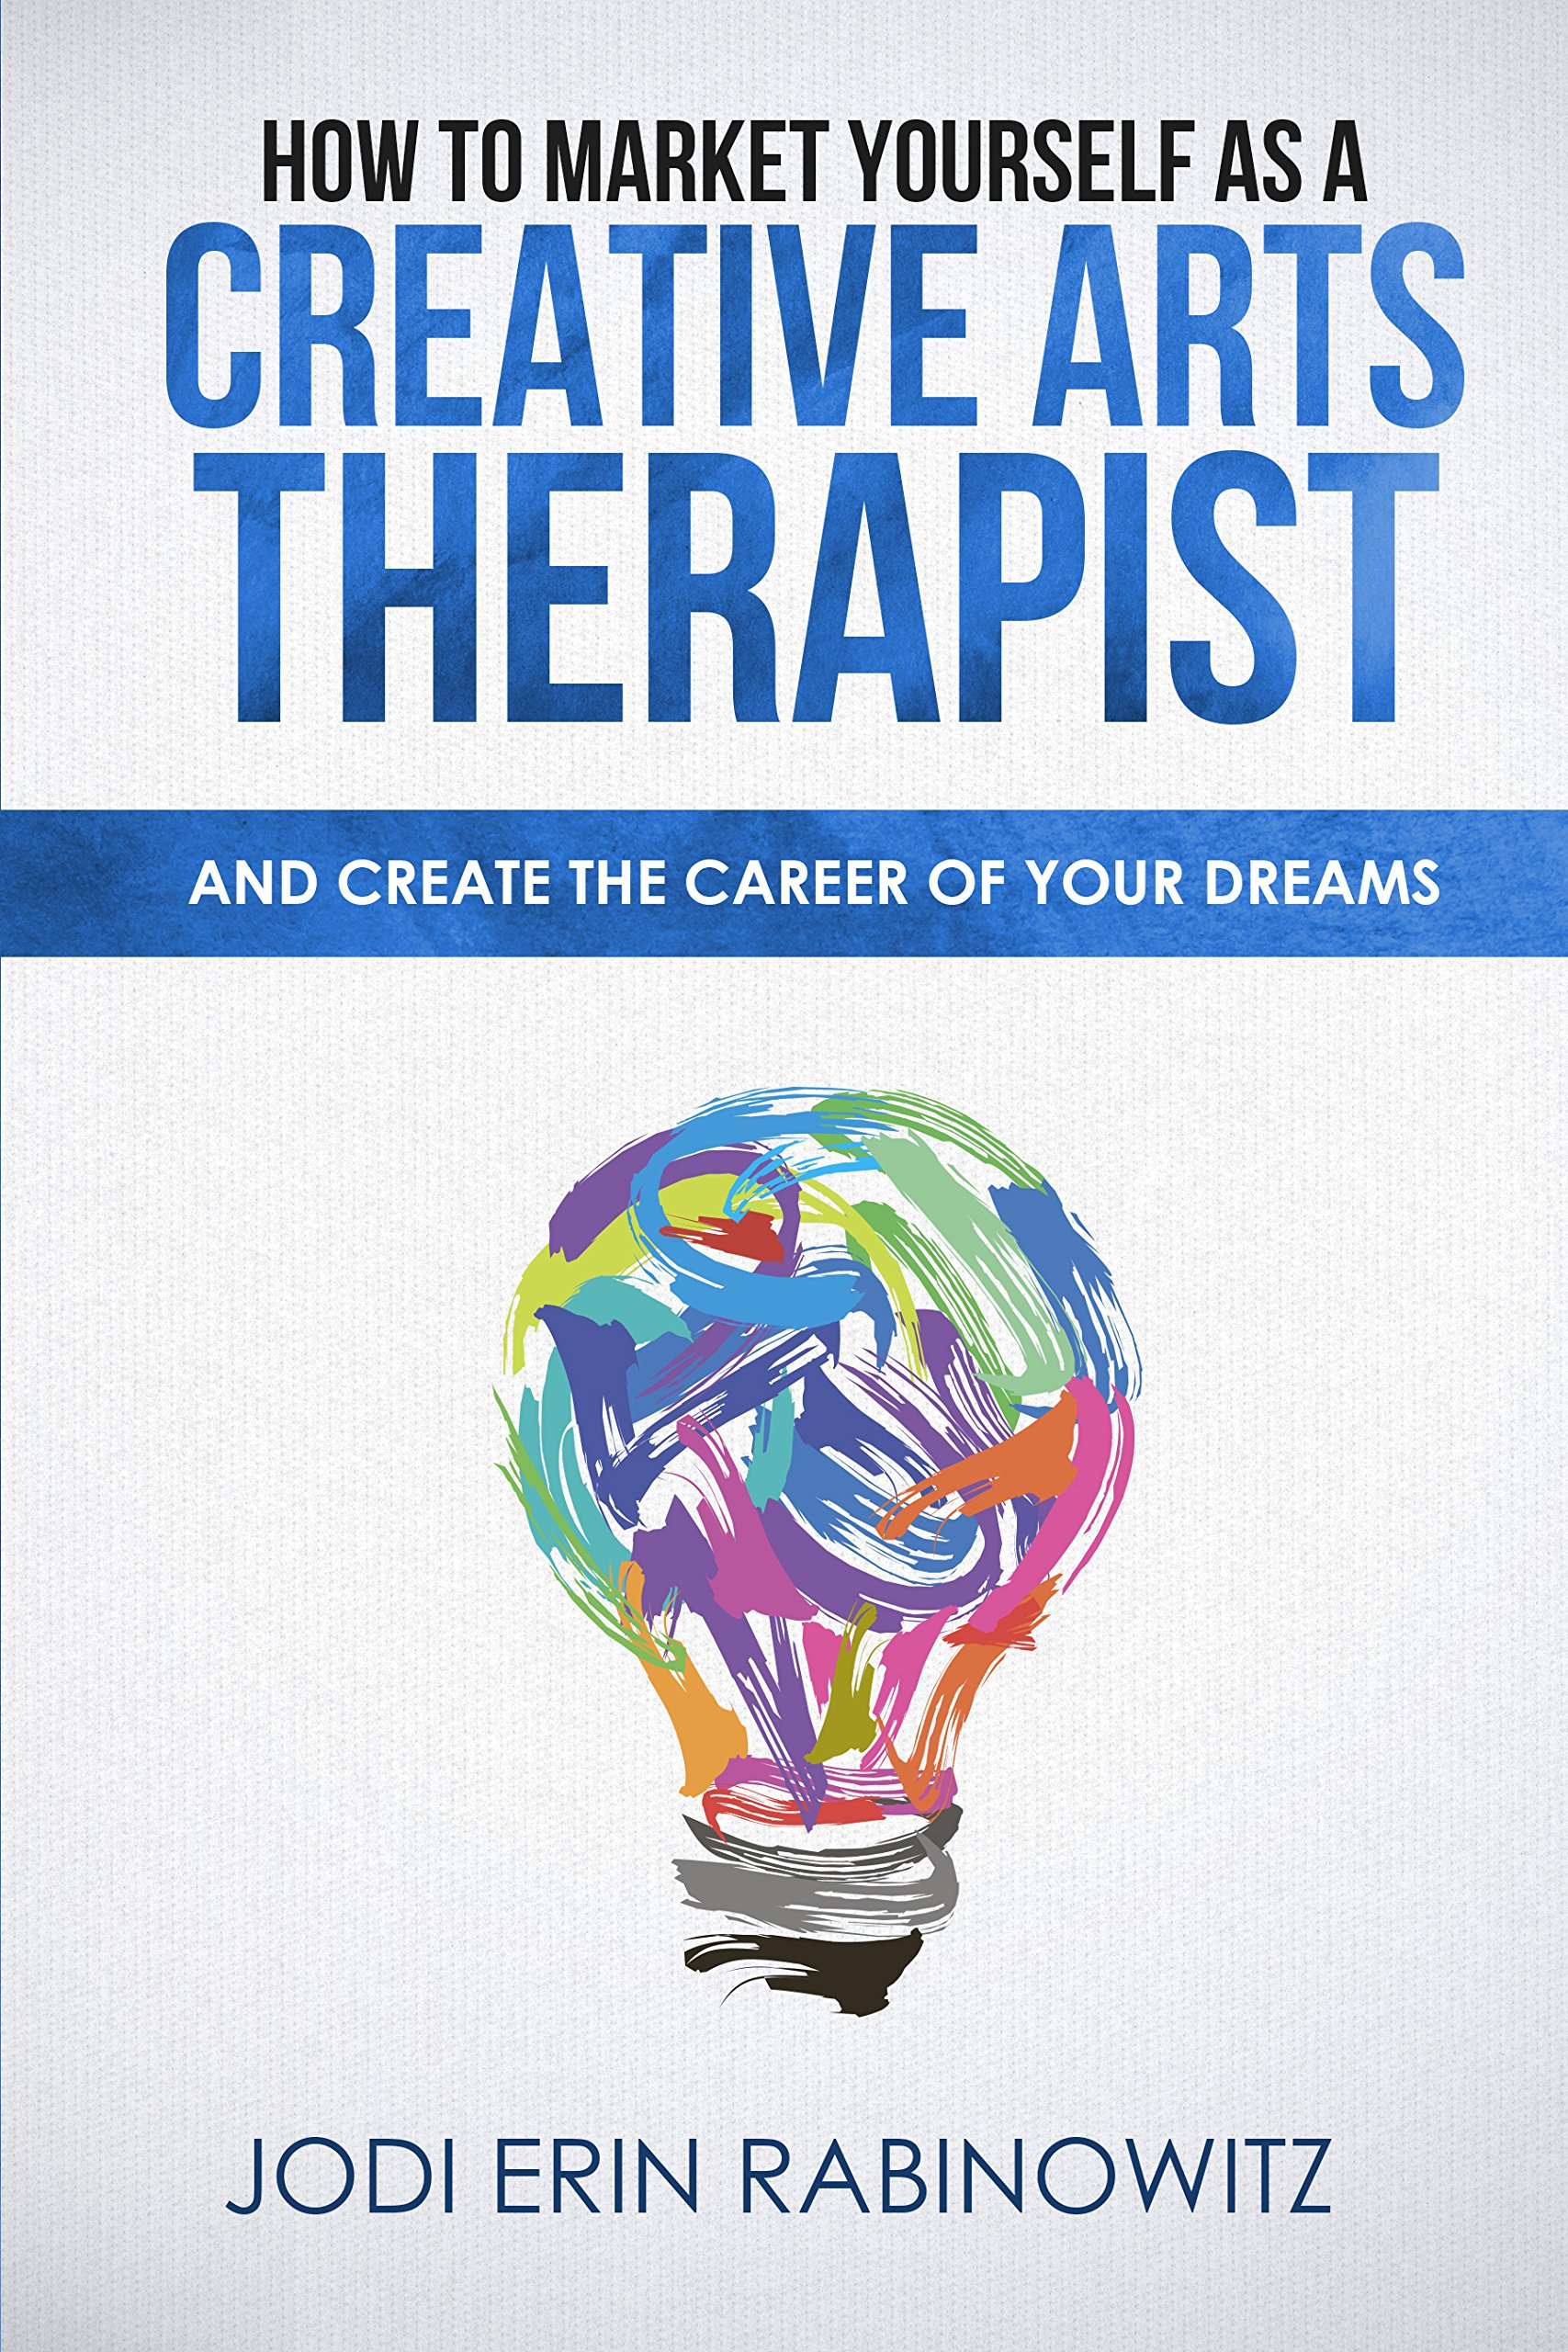 How to Market Yourself as a Creative Arts Therapist: And Create the Career of Your Dreams